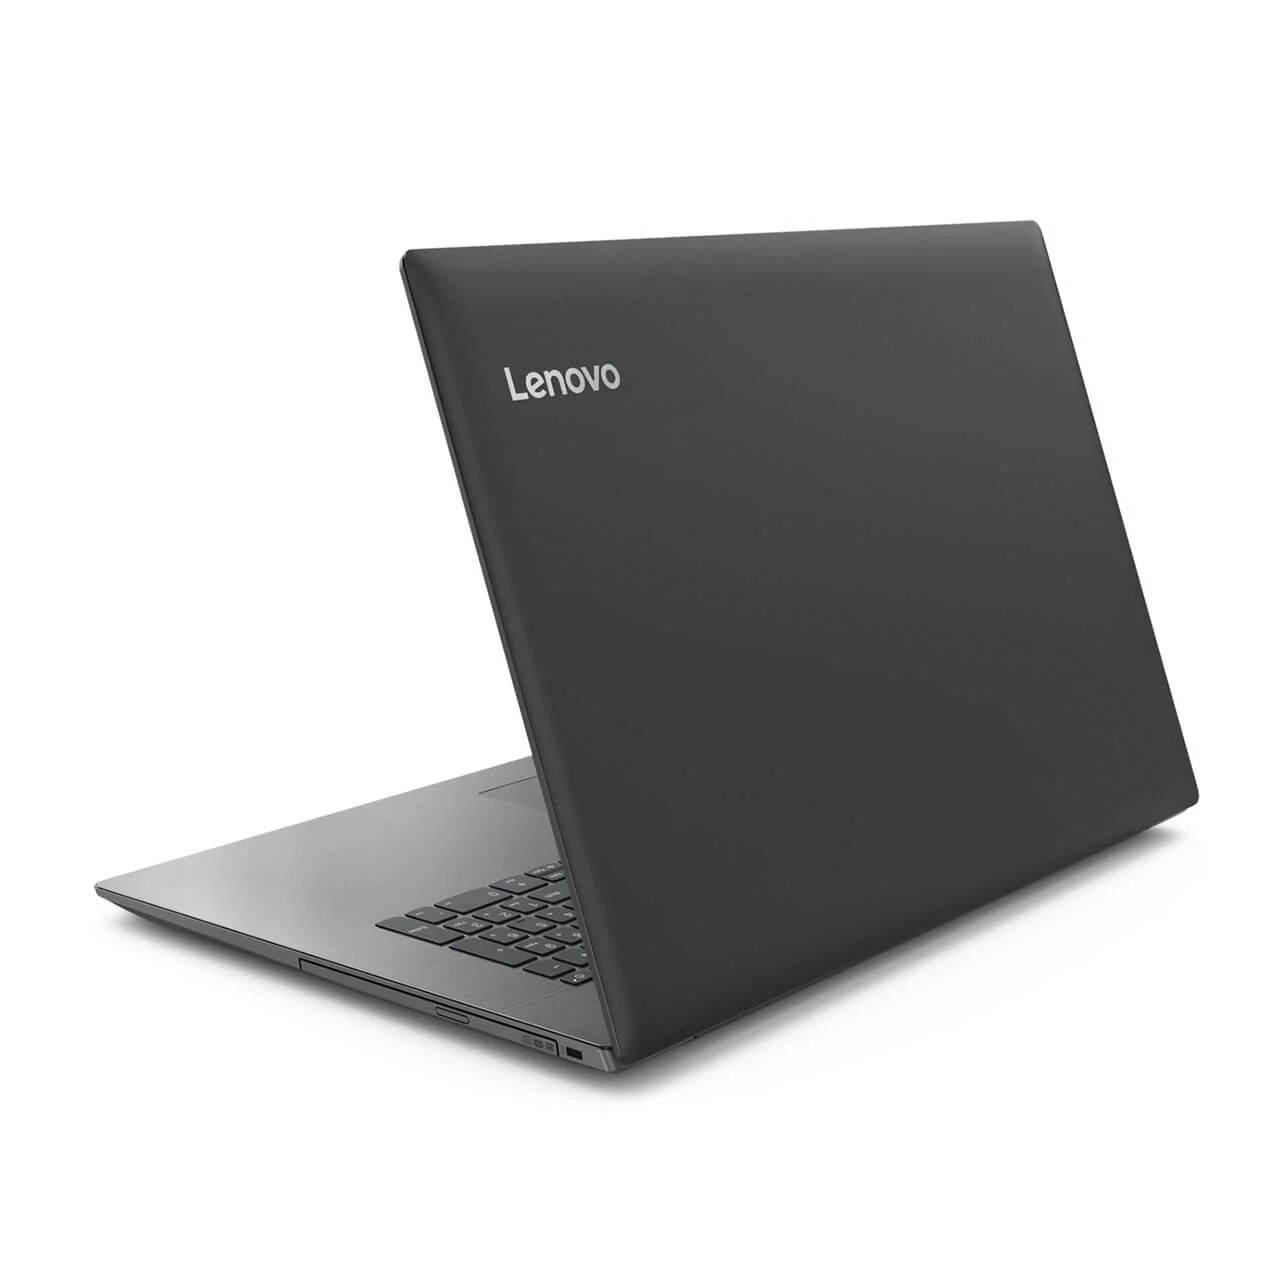 Lenovo Laptop Lenovo Ideapad 330 15 6